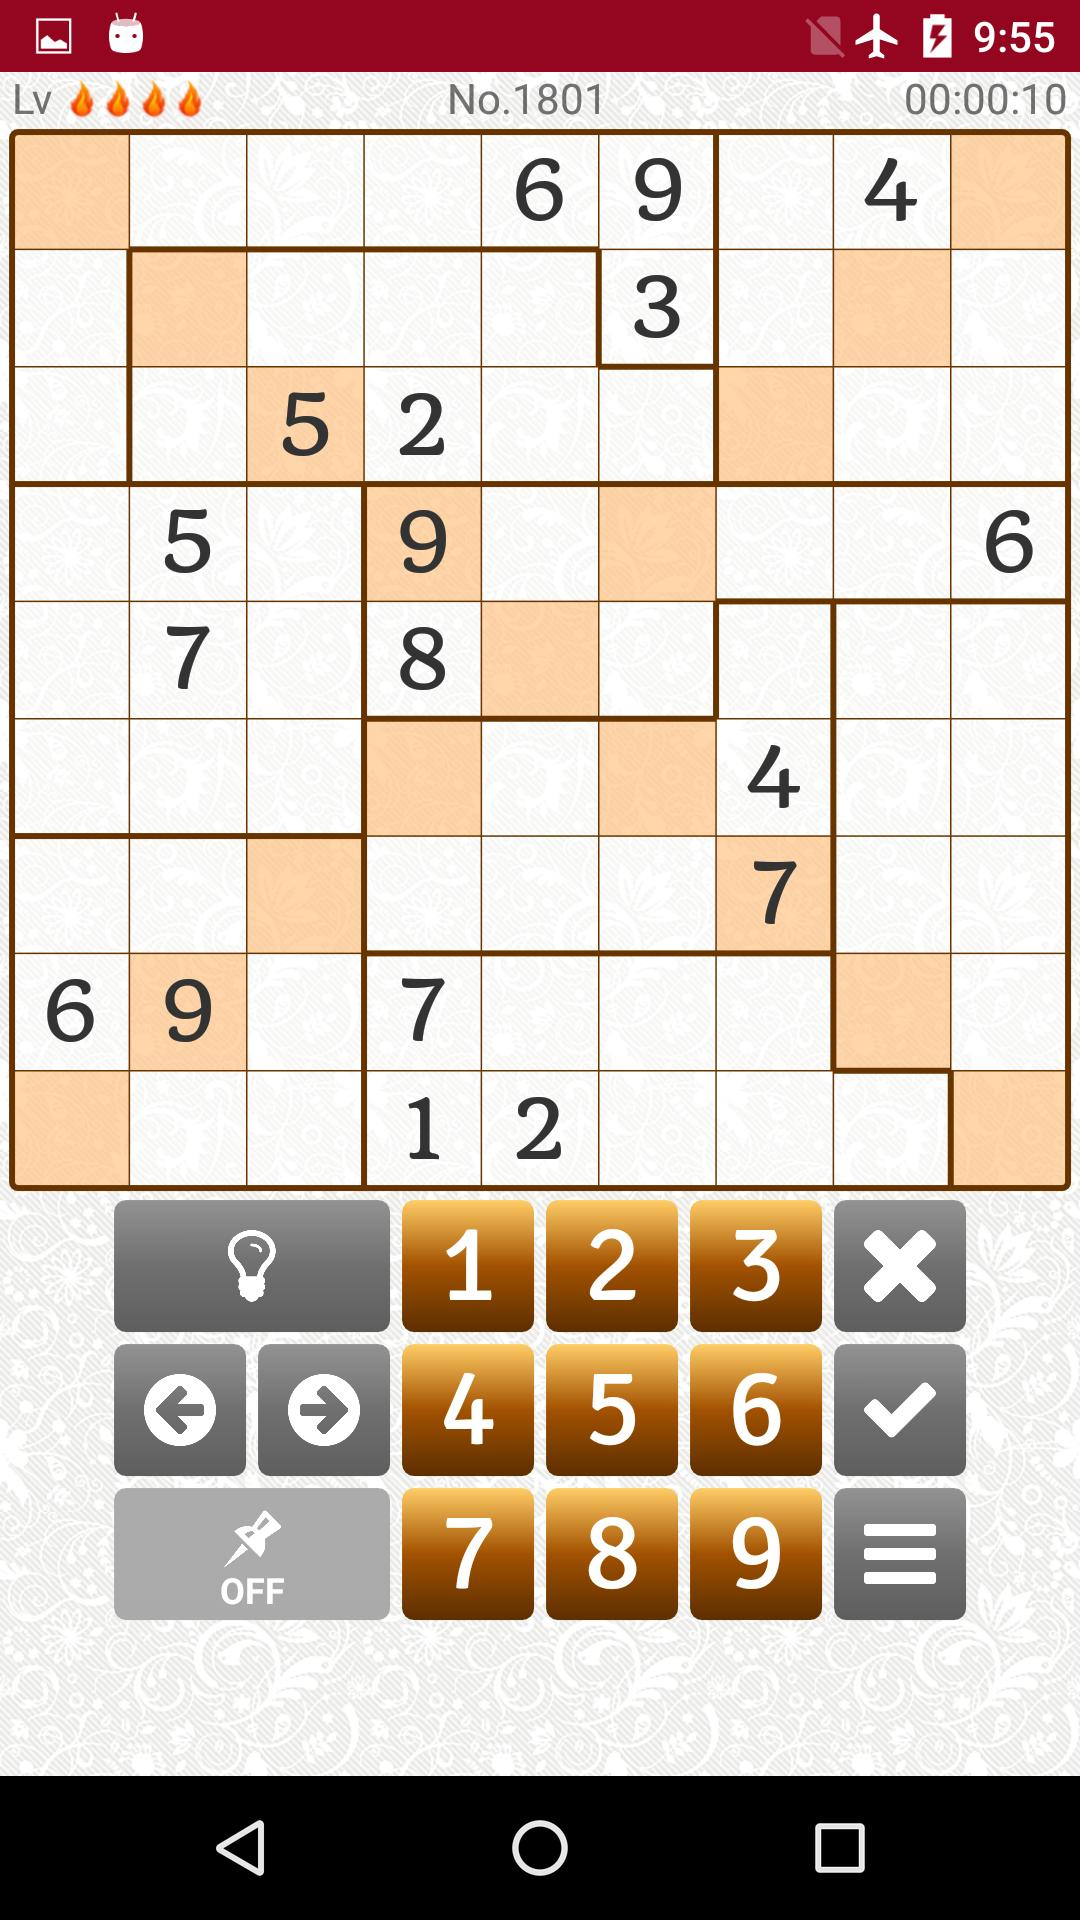 Extreme Difficult Sudoku 2500 for Android - APK Download